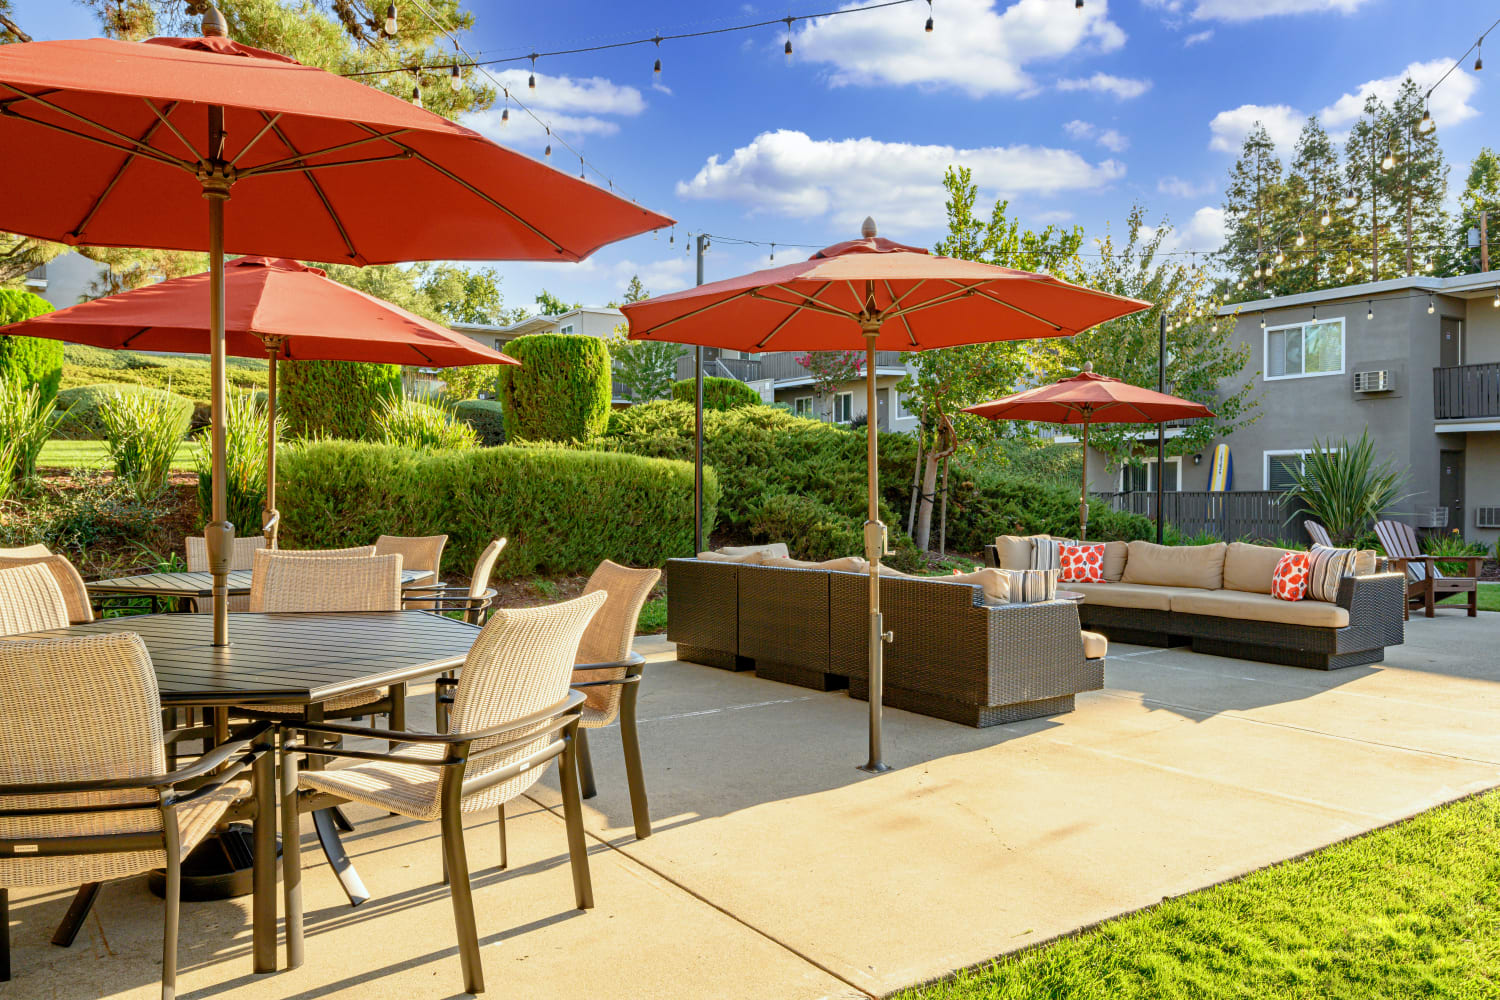 Outdoor lounge on a sunny day at Pleasanton Heights in Pleasanton, California